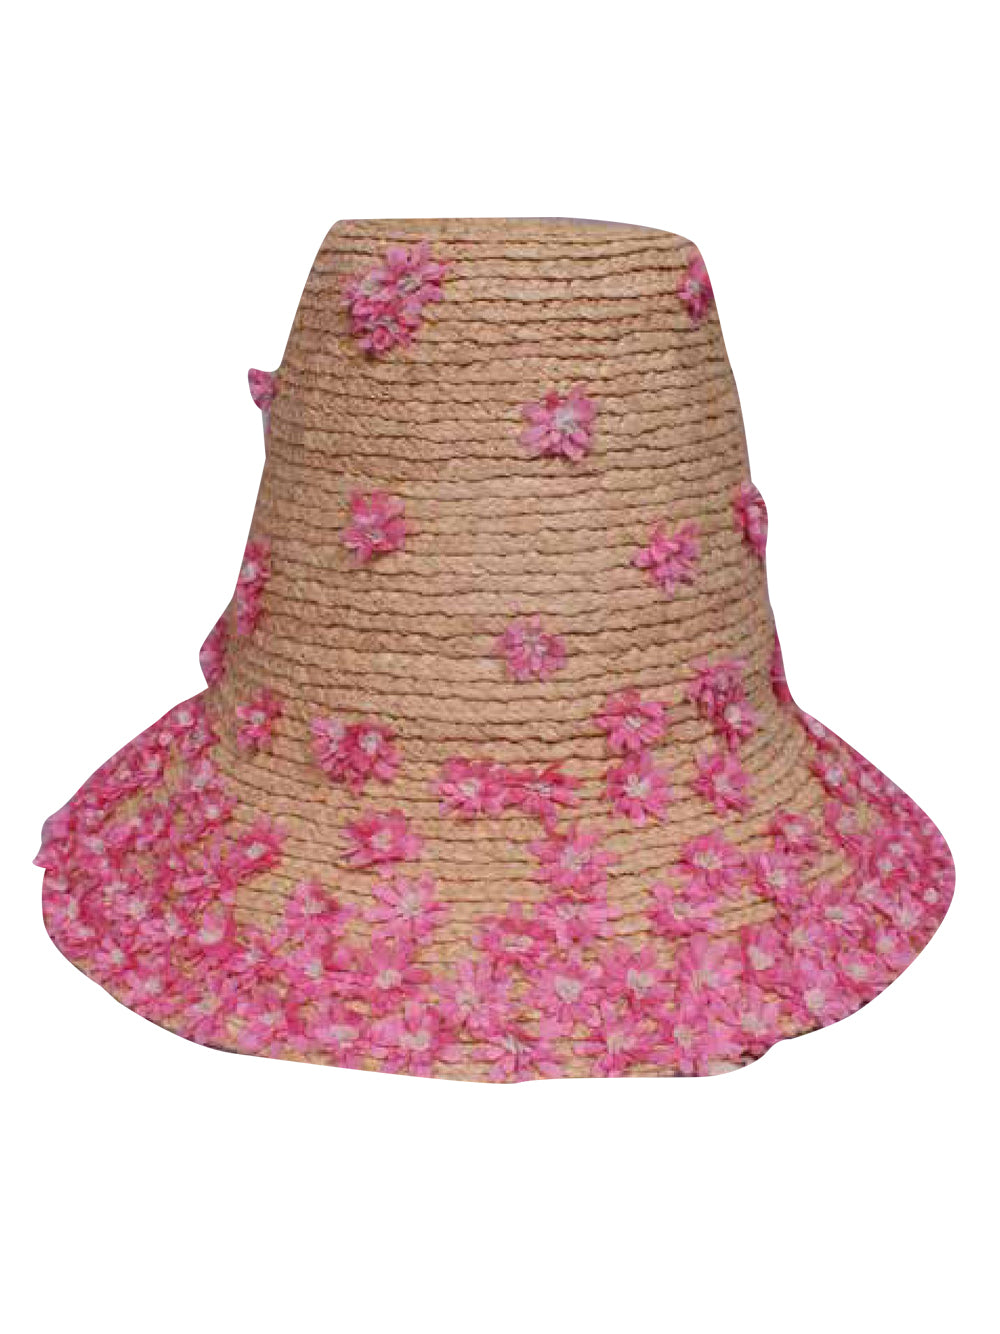 Flower Embelished Hat